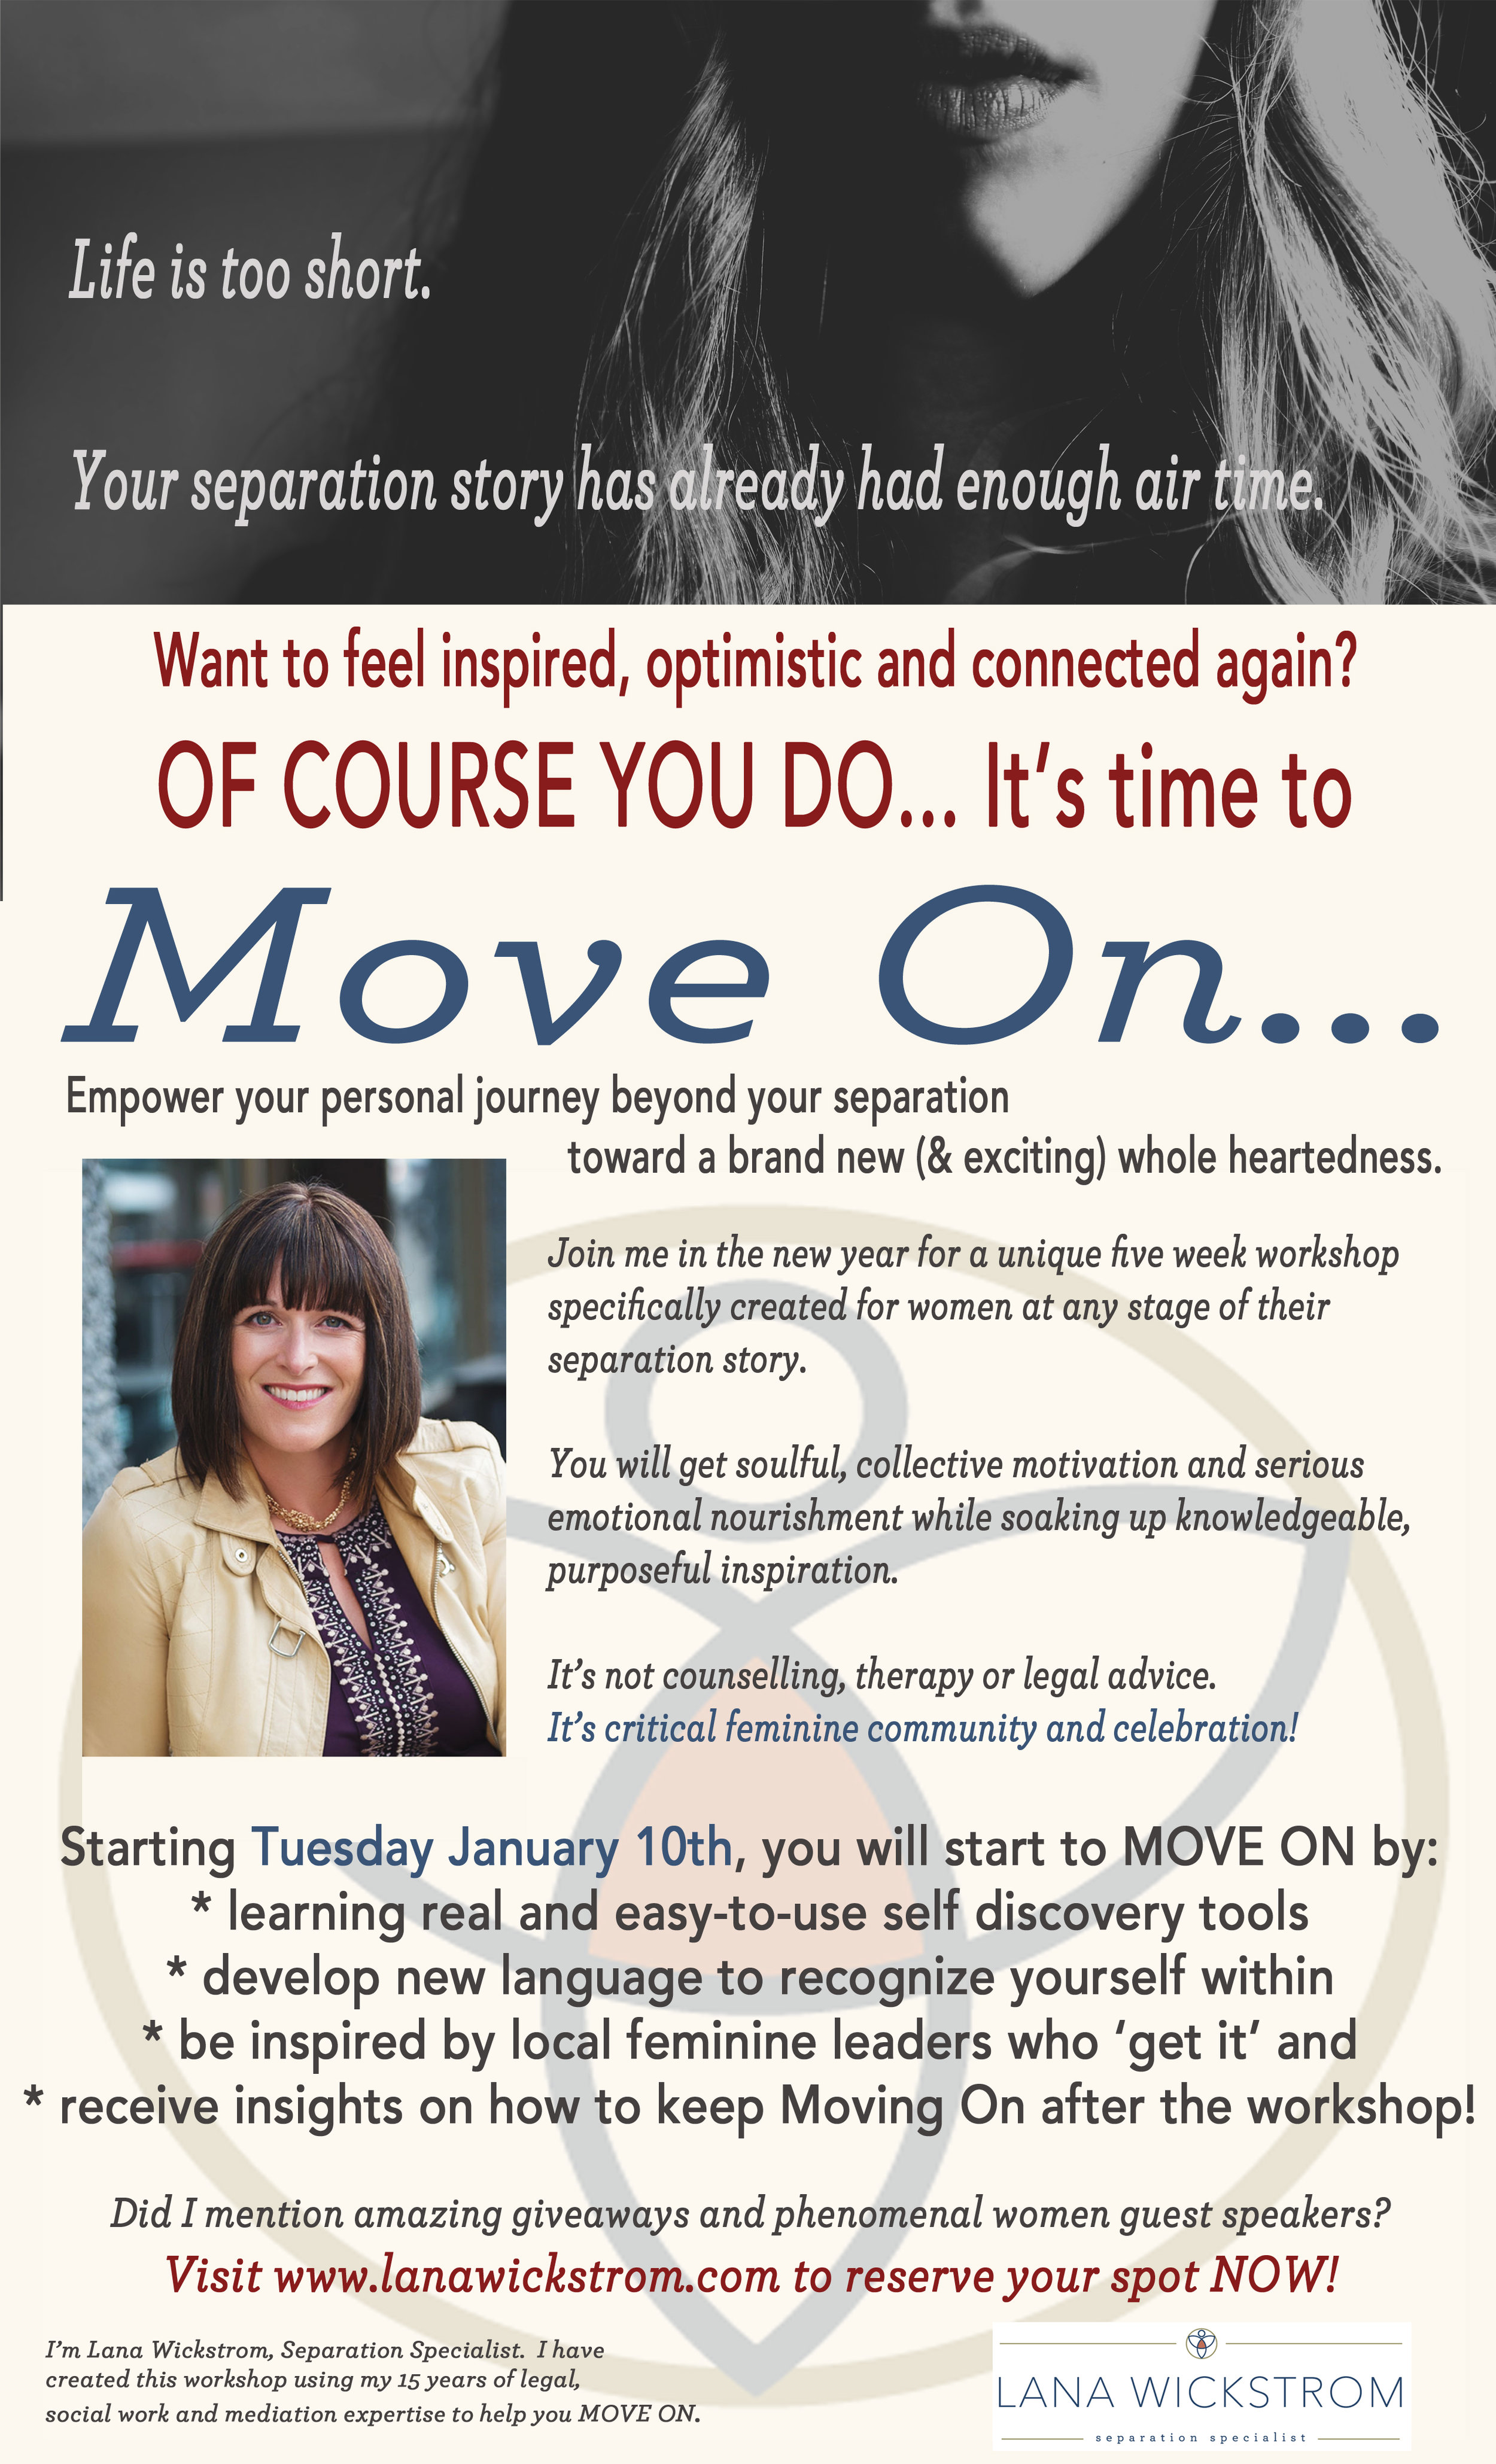 Learn more about Move On, a five-week workshop for women in Saskatchewan CANADA at any stage of their separation or divorce story who are looking for optimism again.